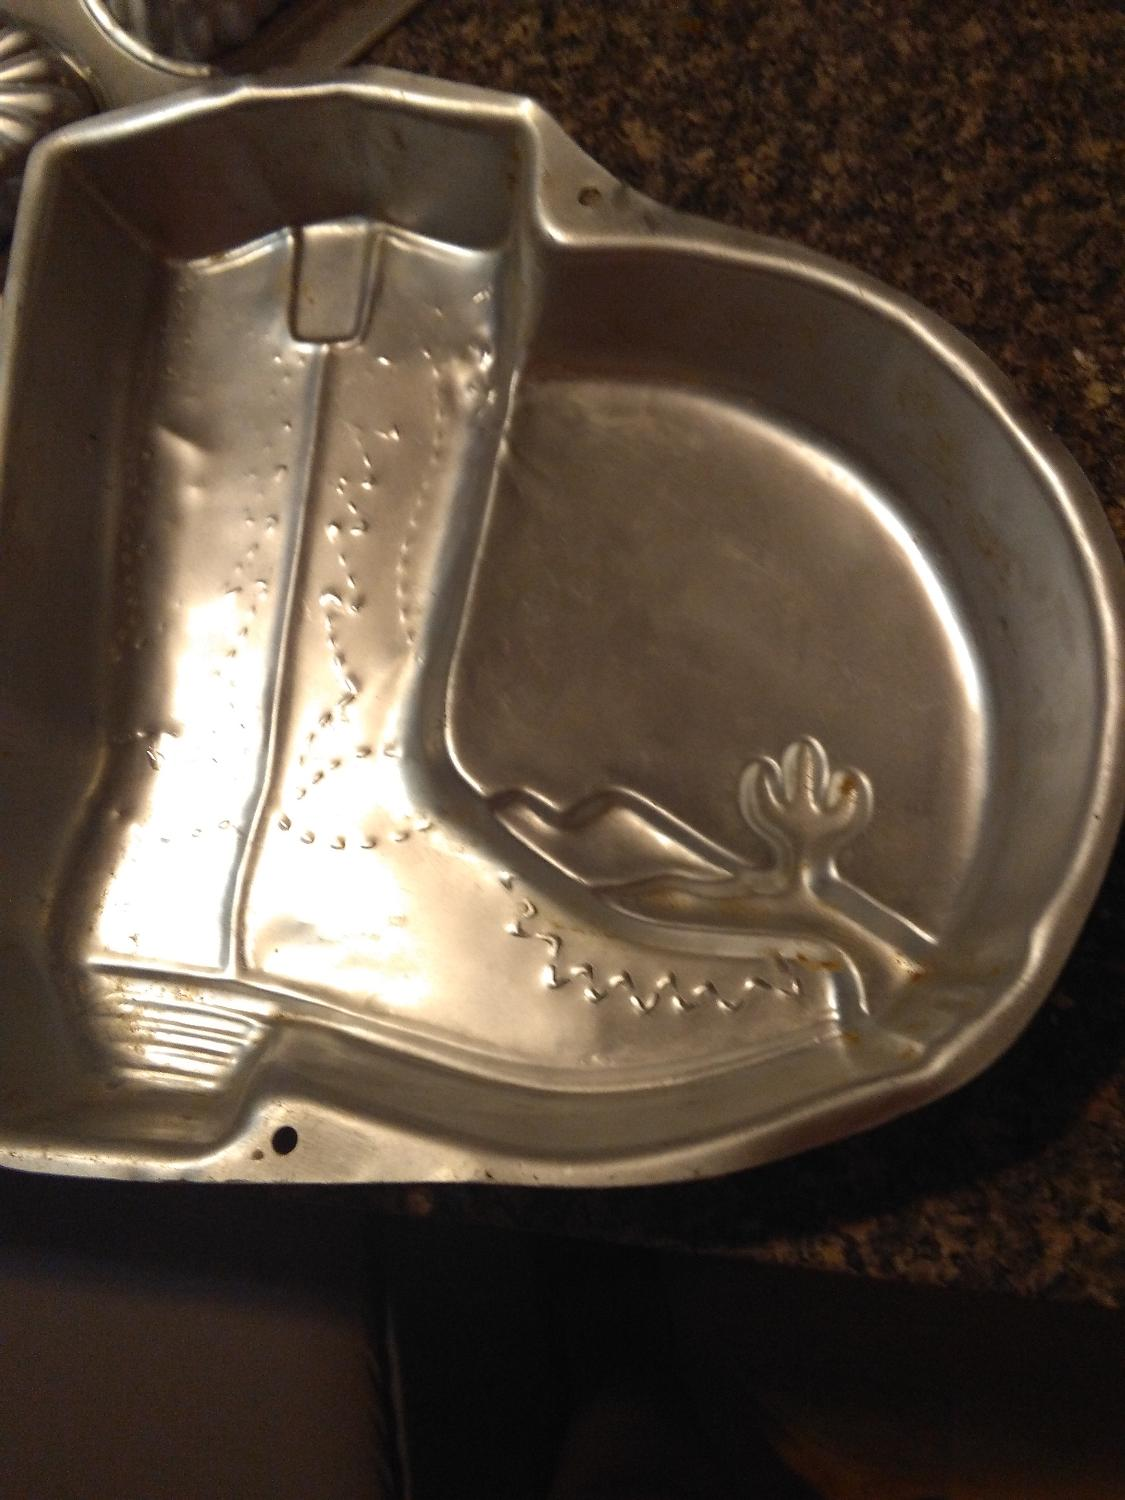 Find More Cowboy Boot Cake Pan For Sale At Up To 90 Off